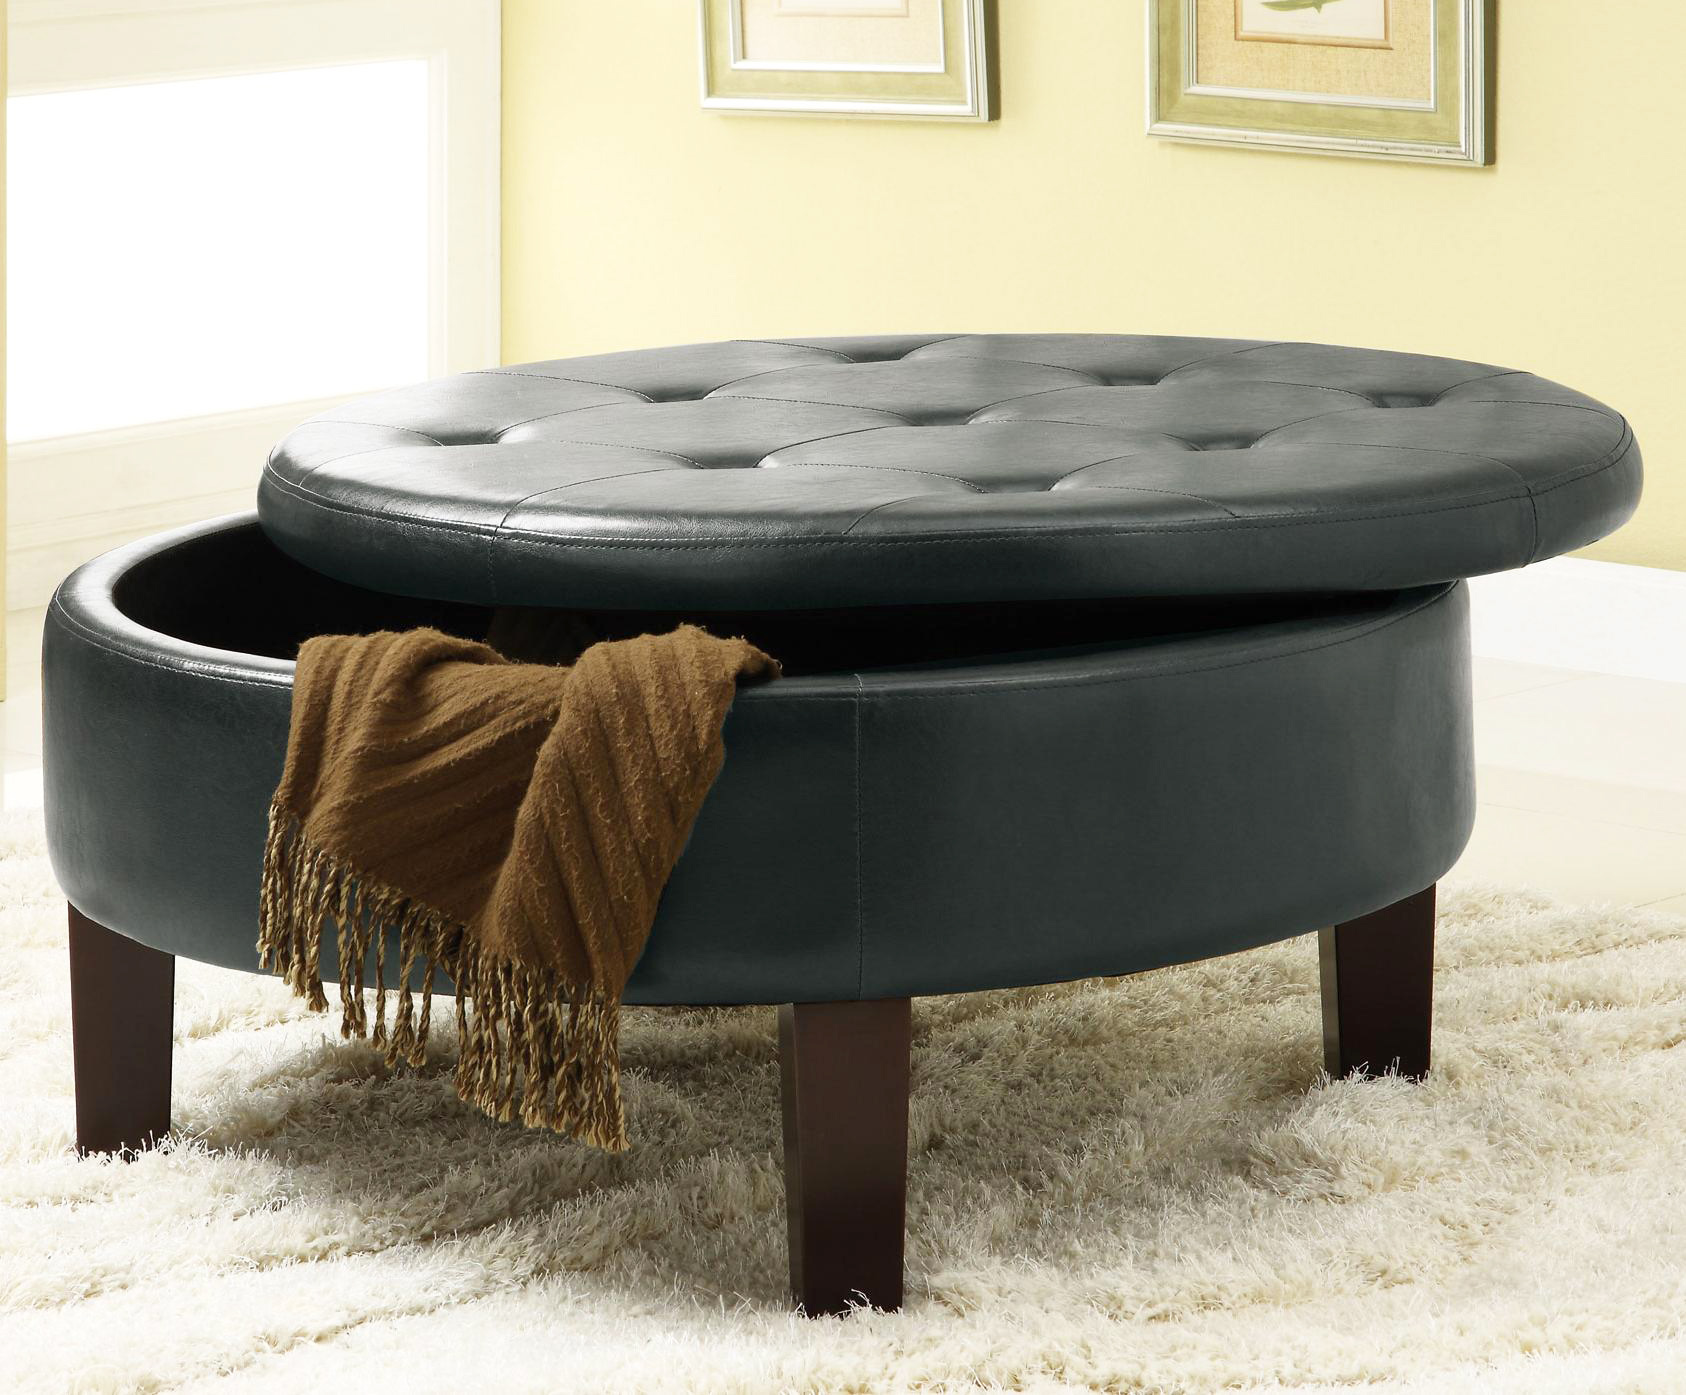 Tufted coffee table for elegance, creativity and luxury: black small round leather and fabric tufted coffee table ottoman for living room